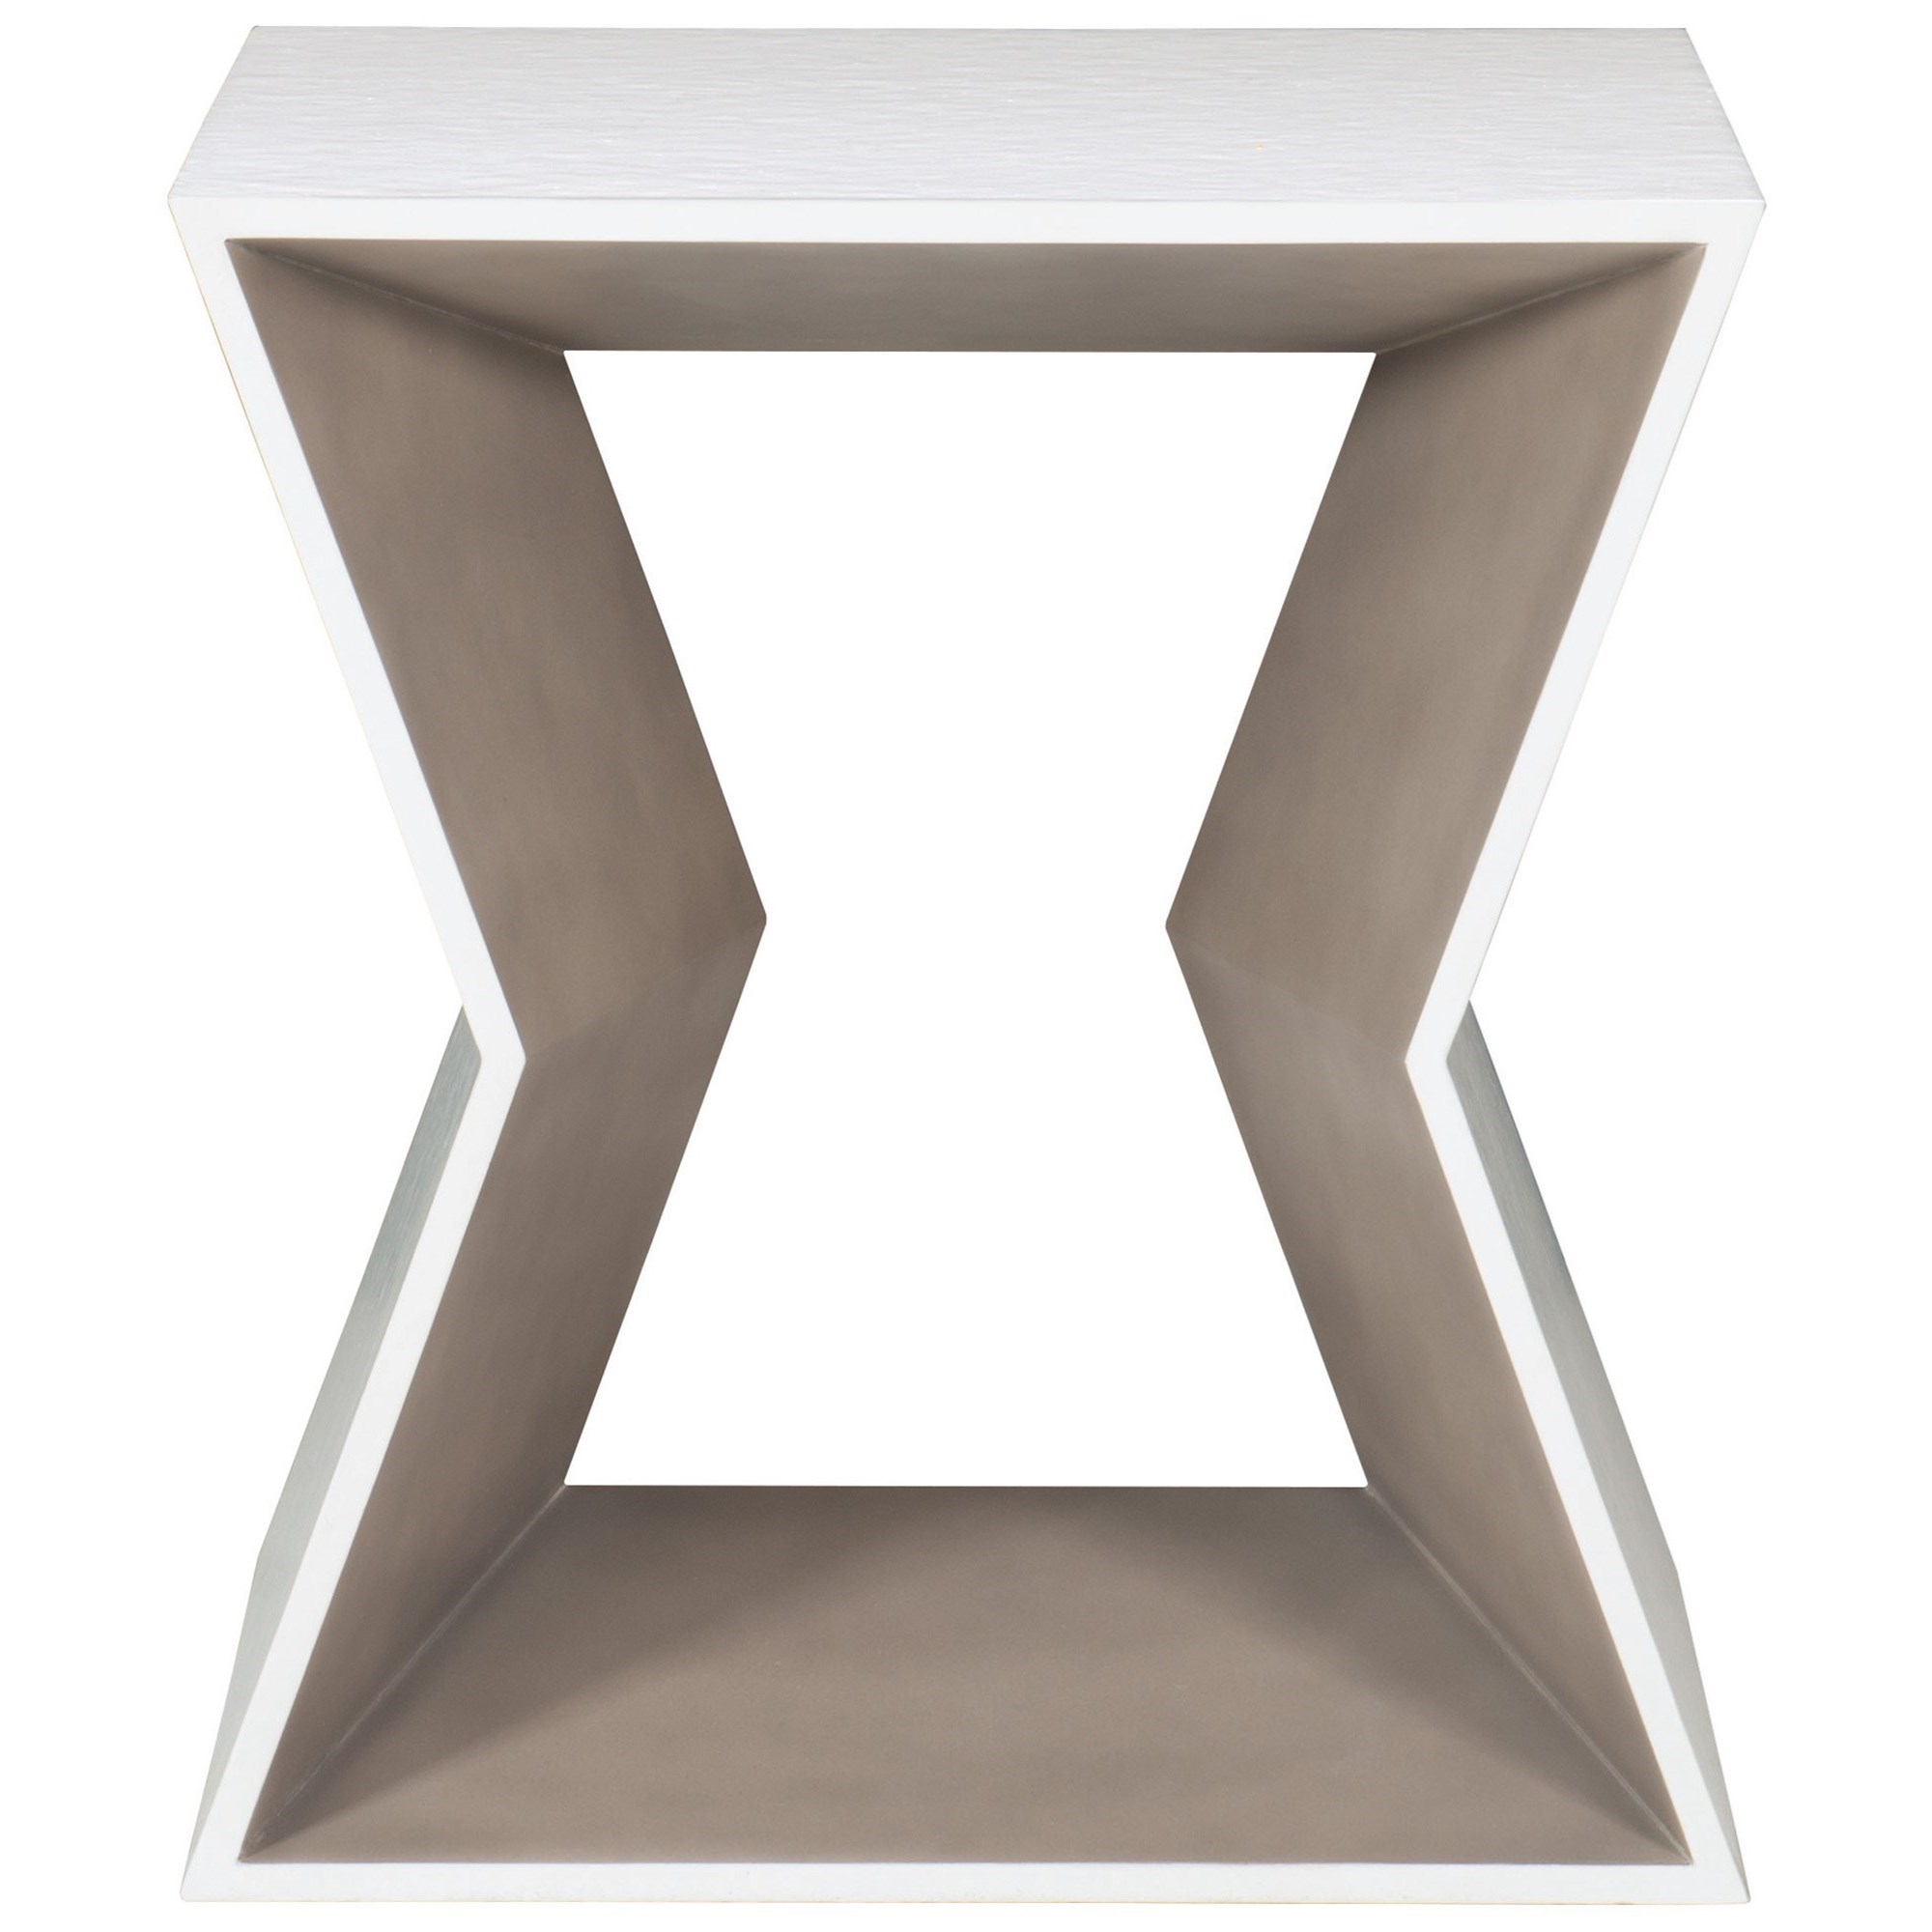 Kearny Square End Table by Bernhardt at Fisher Home Furnishings